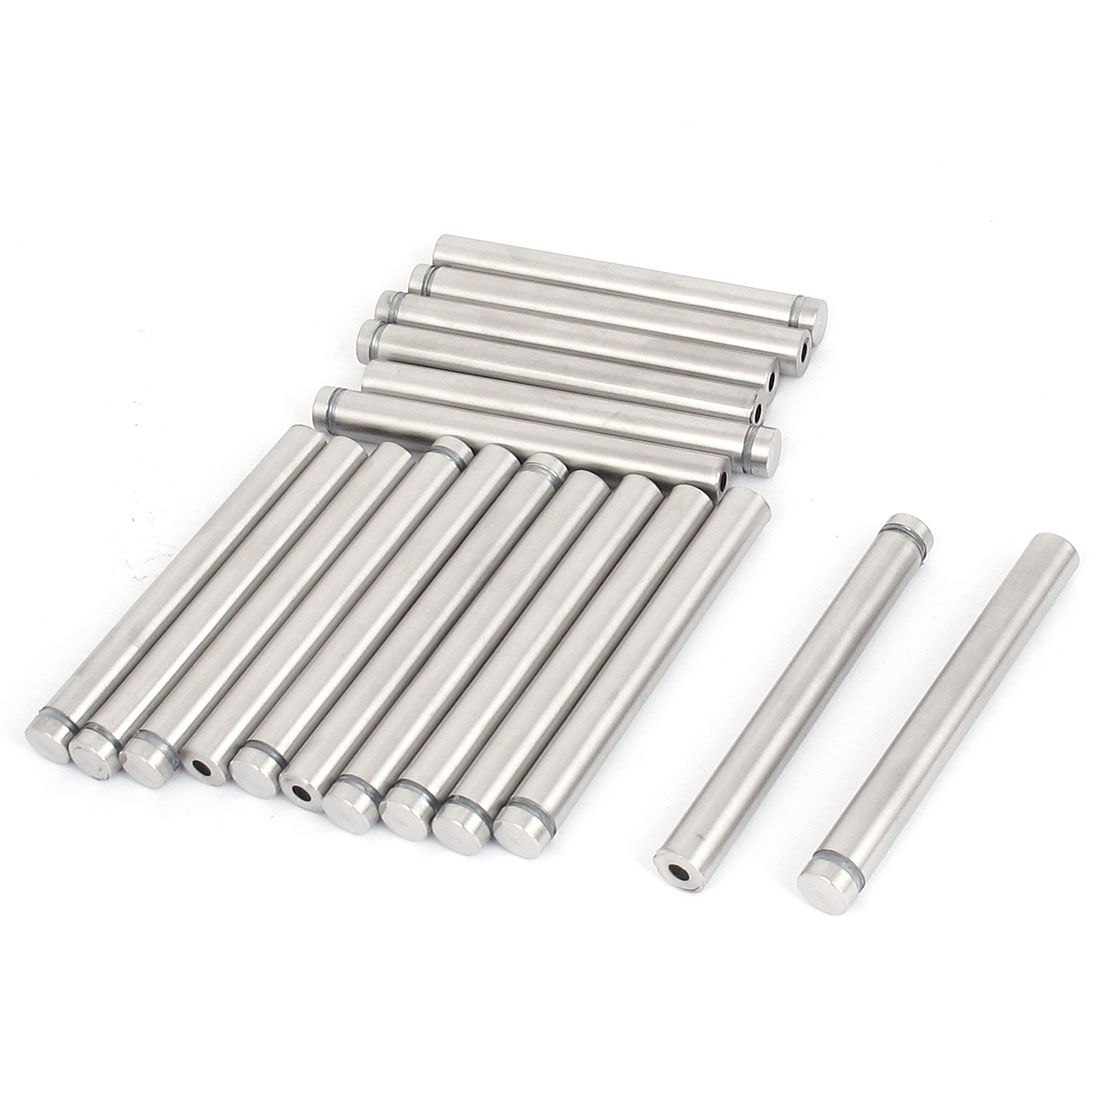 12mm x 100mm Stainless Steel Advertising Frameless Glass Standoff Pin 18pcs